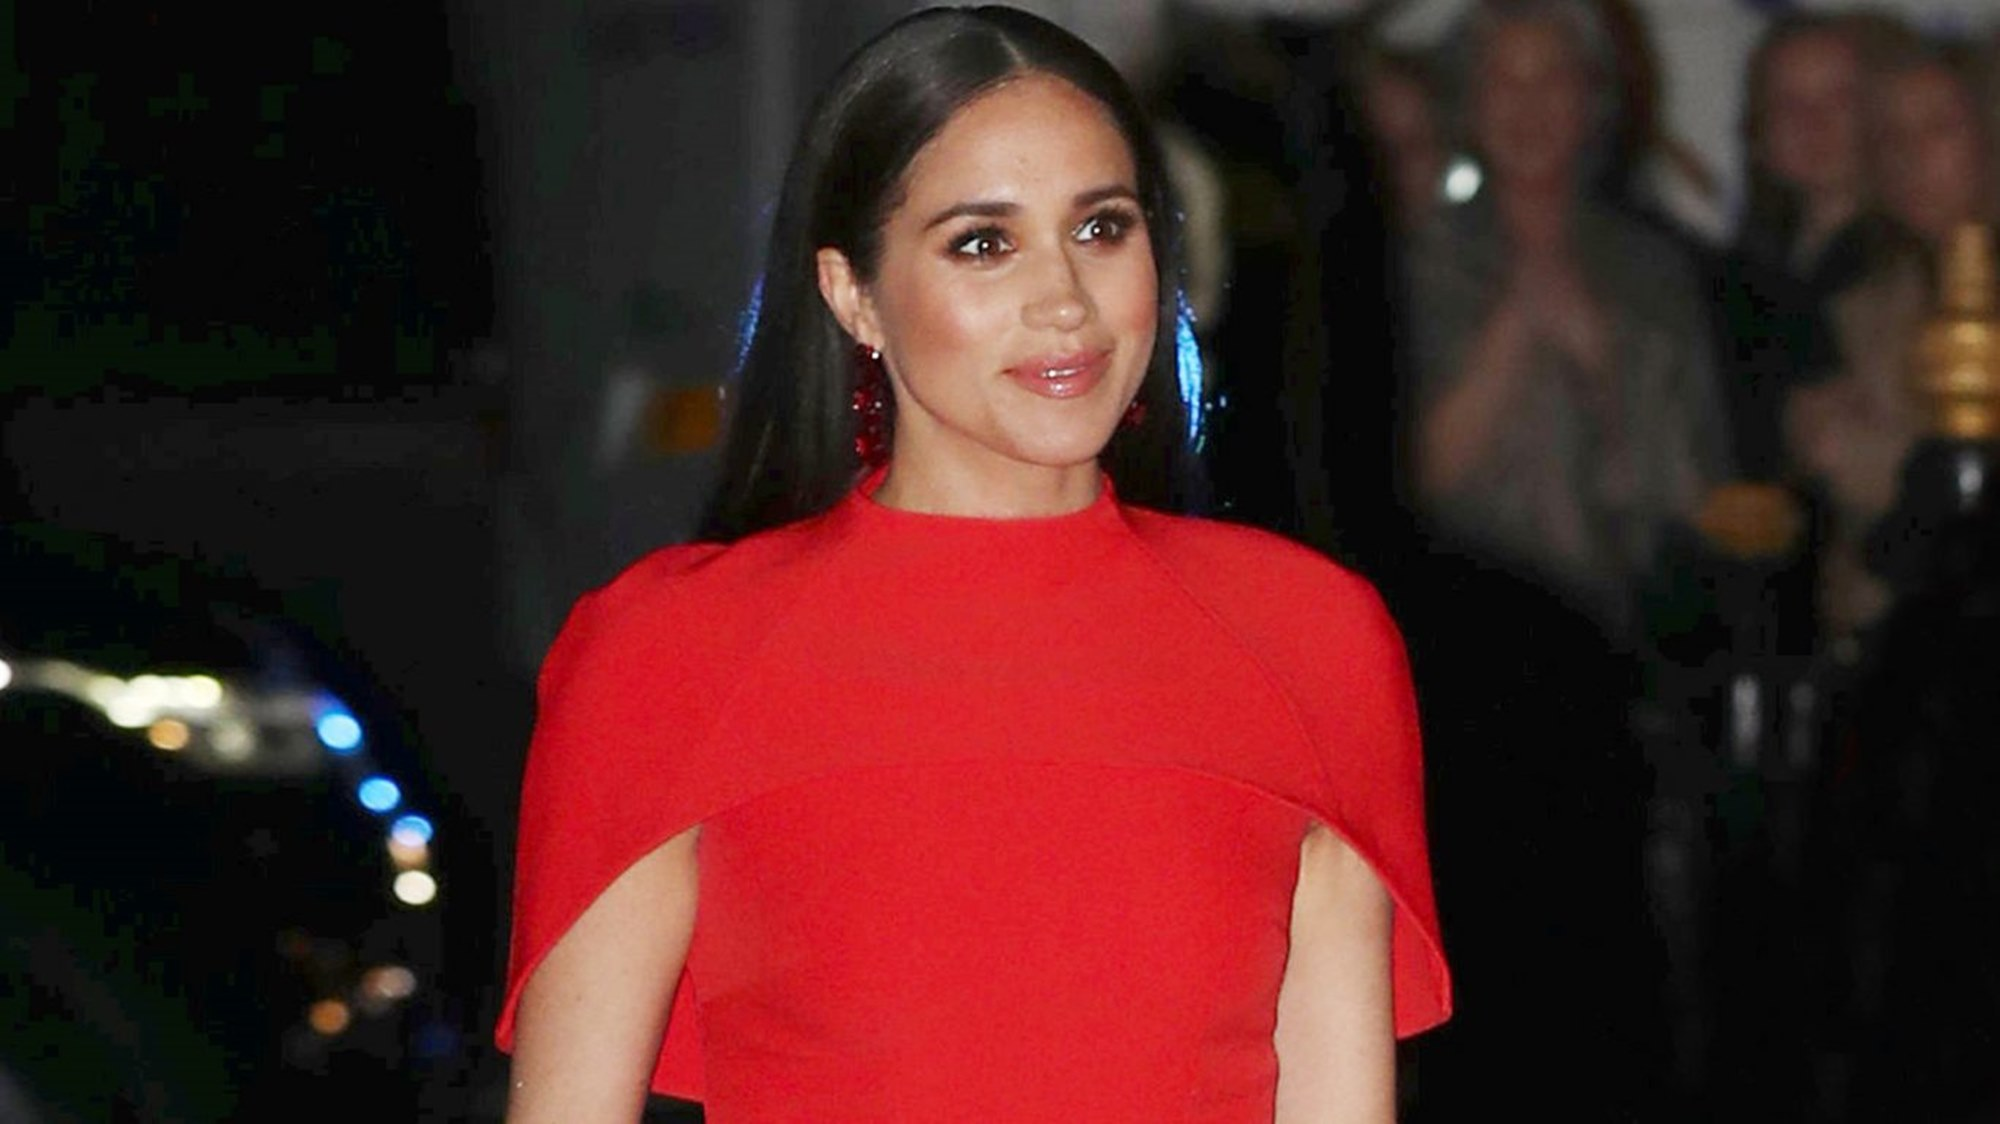 Meghan Markle Prince Harry Victoria Mather Trash Comment